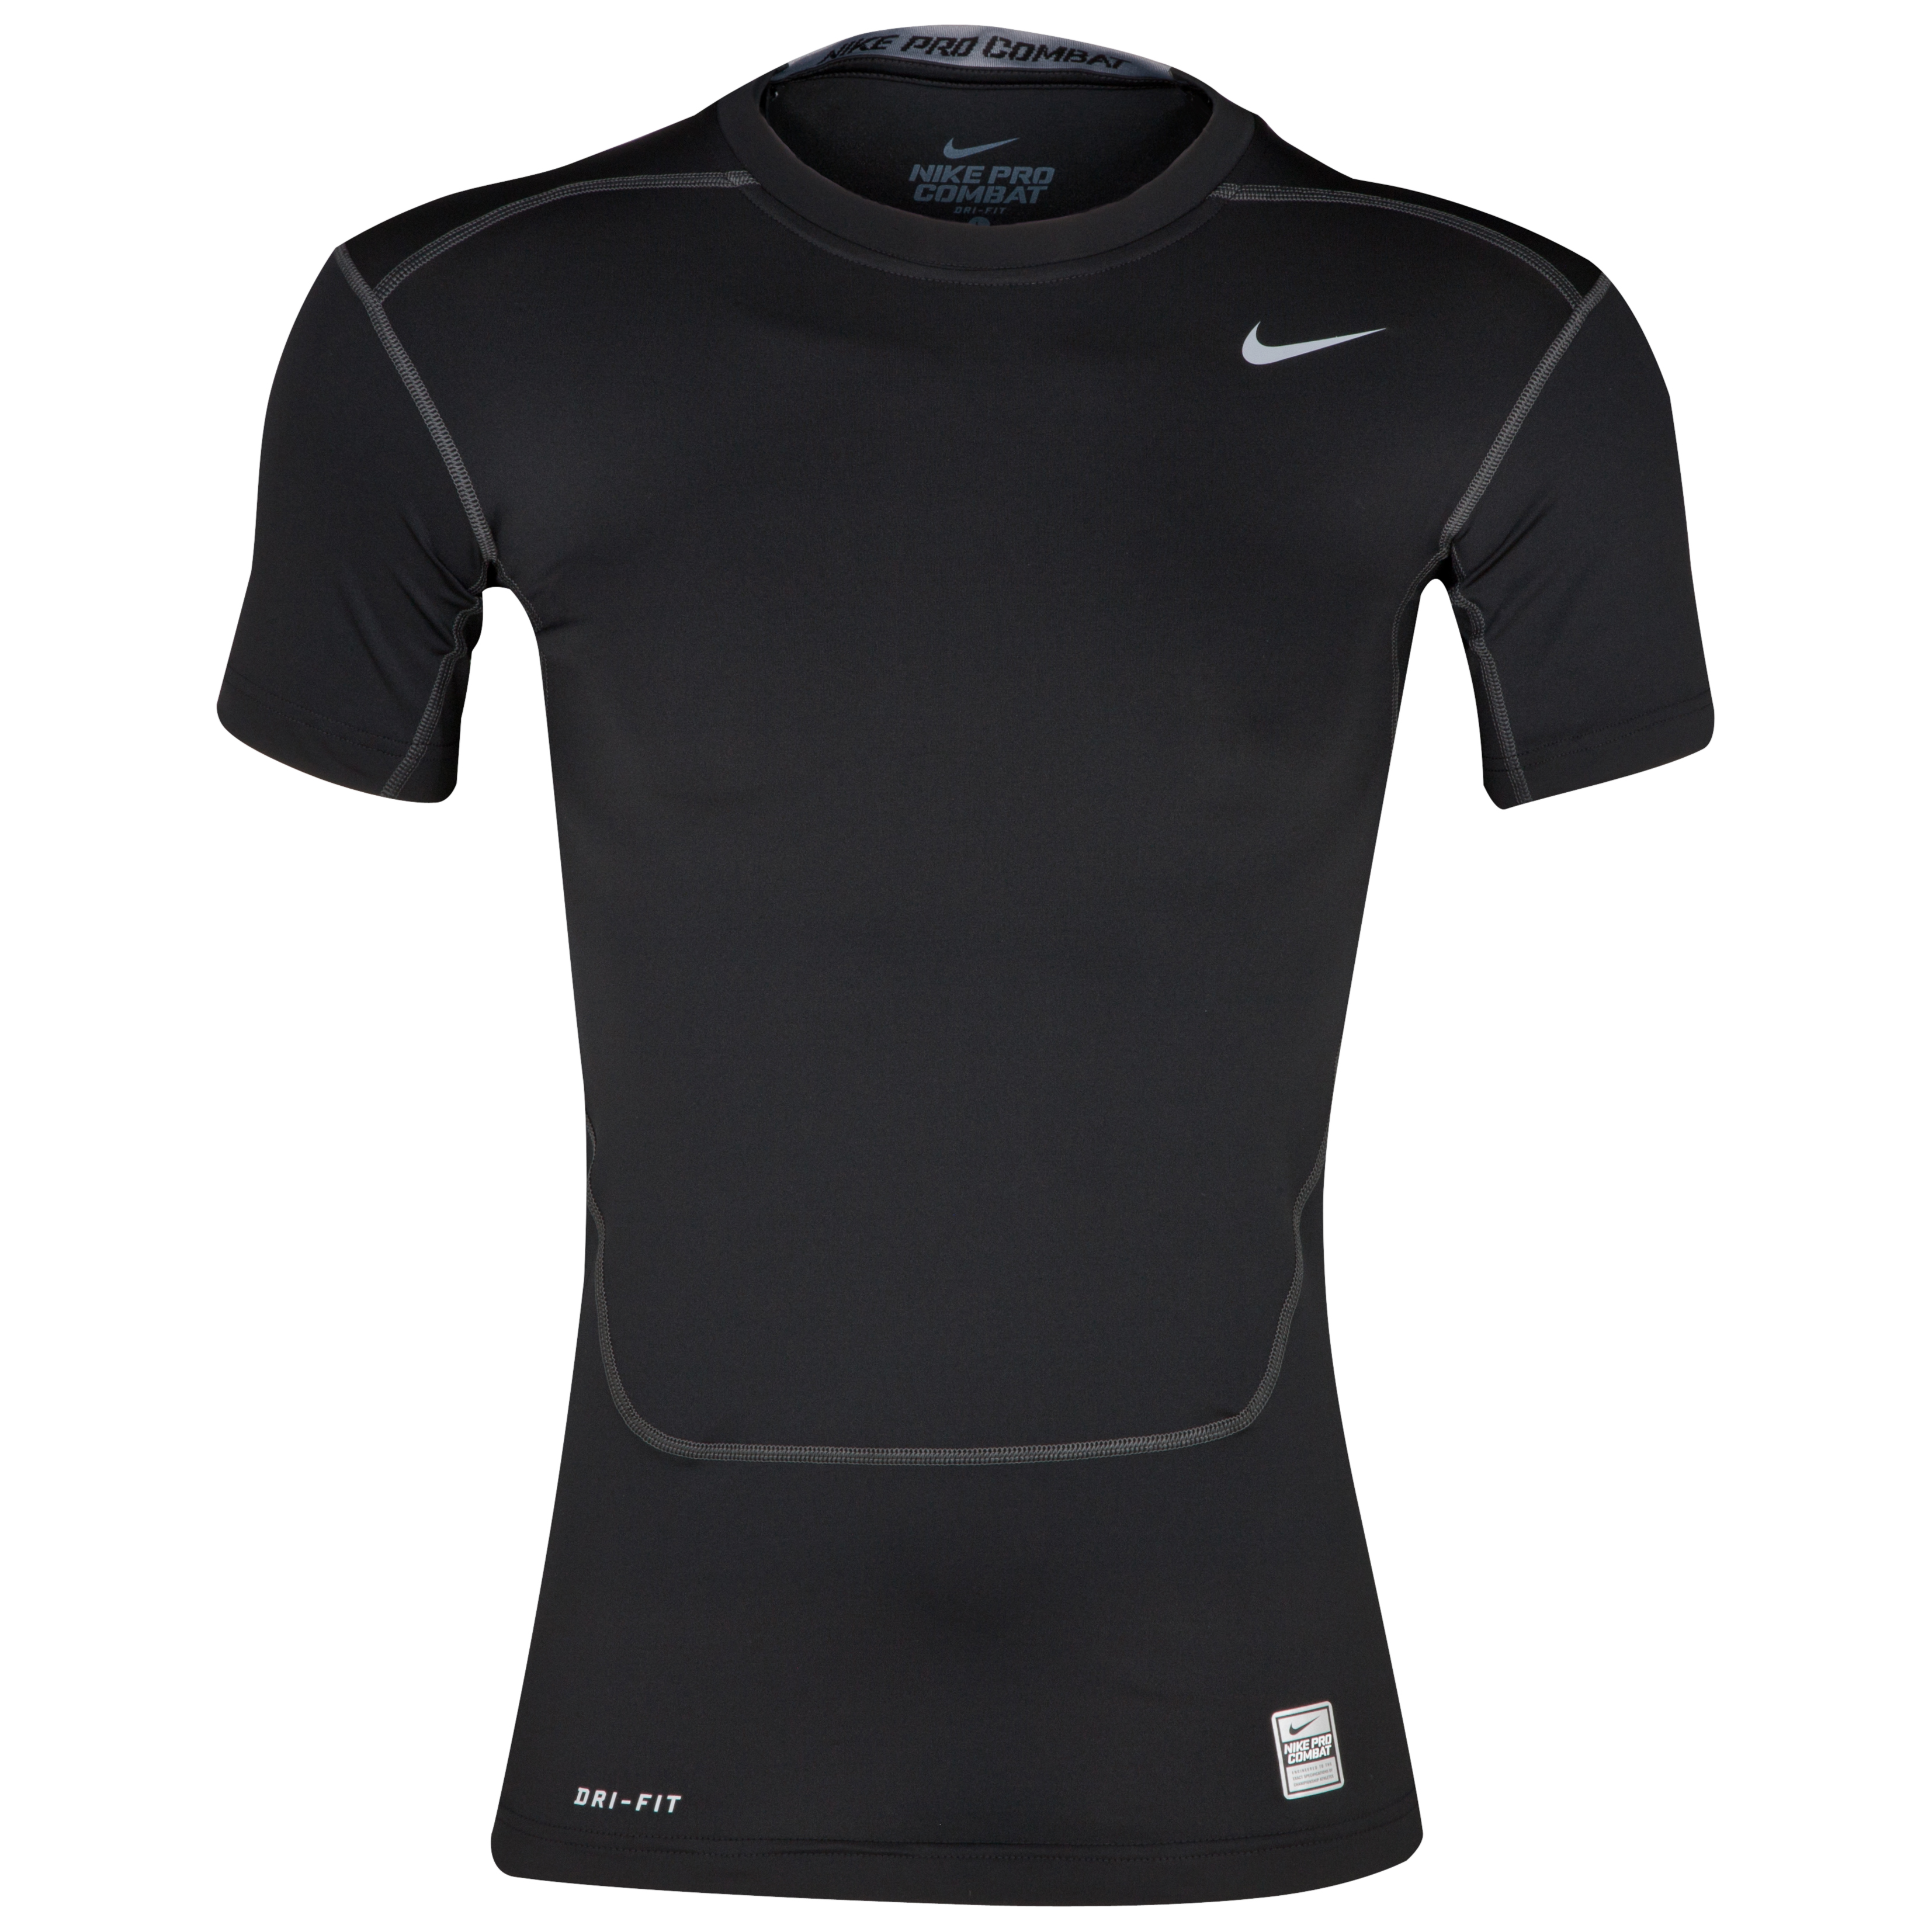 Nike Pro Combat Core Base Layer Top Black